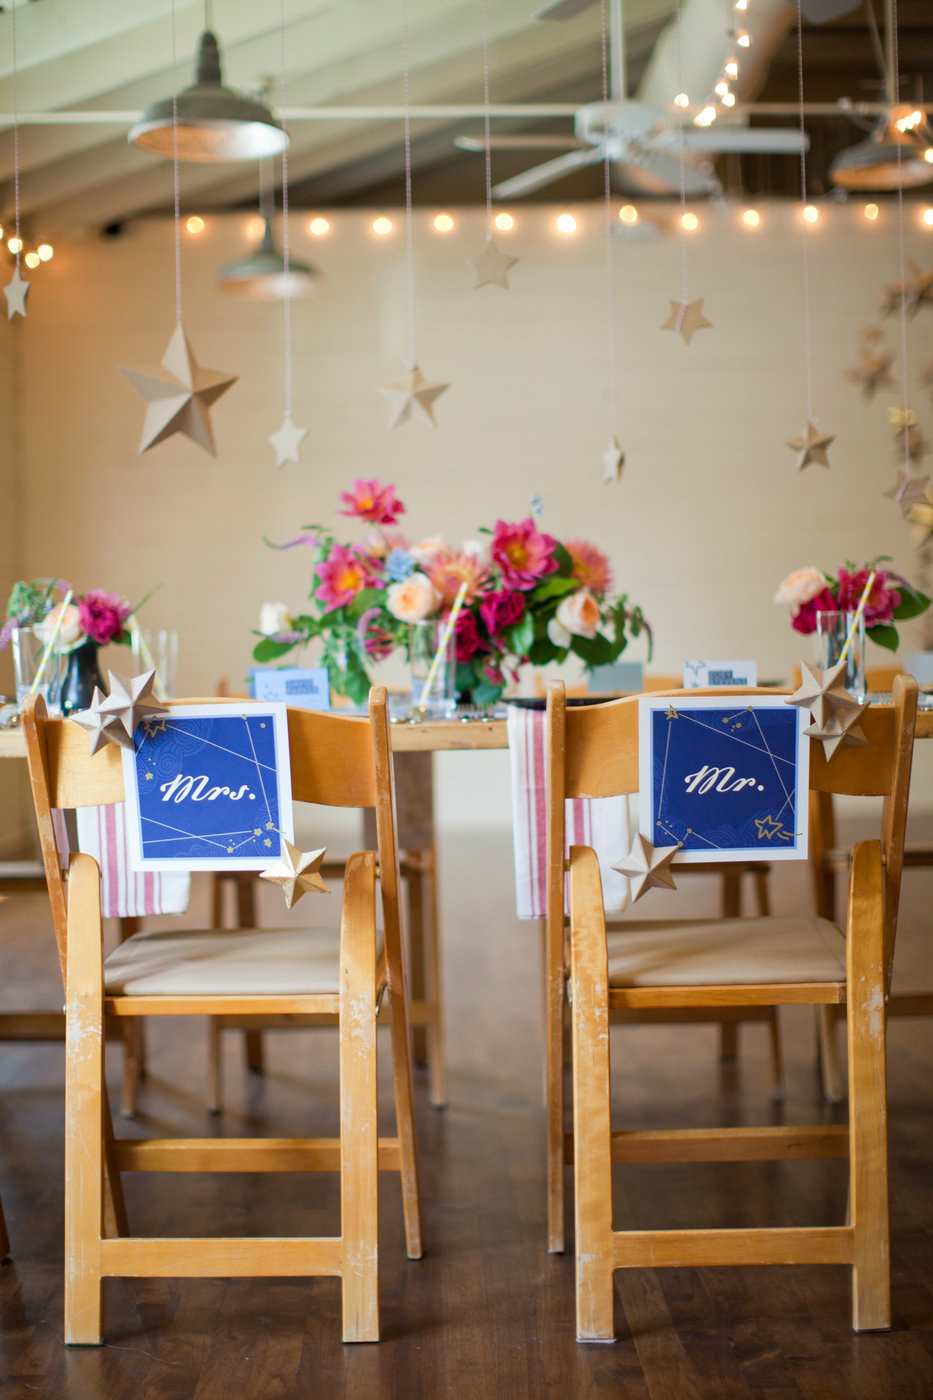 mr and mrs signs with star celestial theme